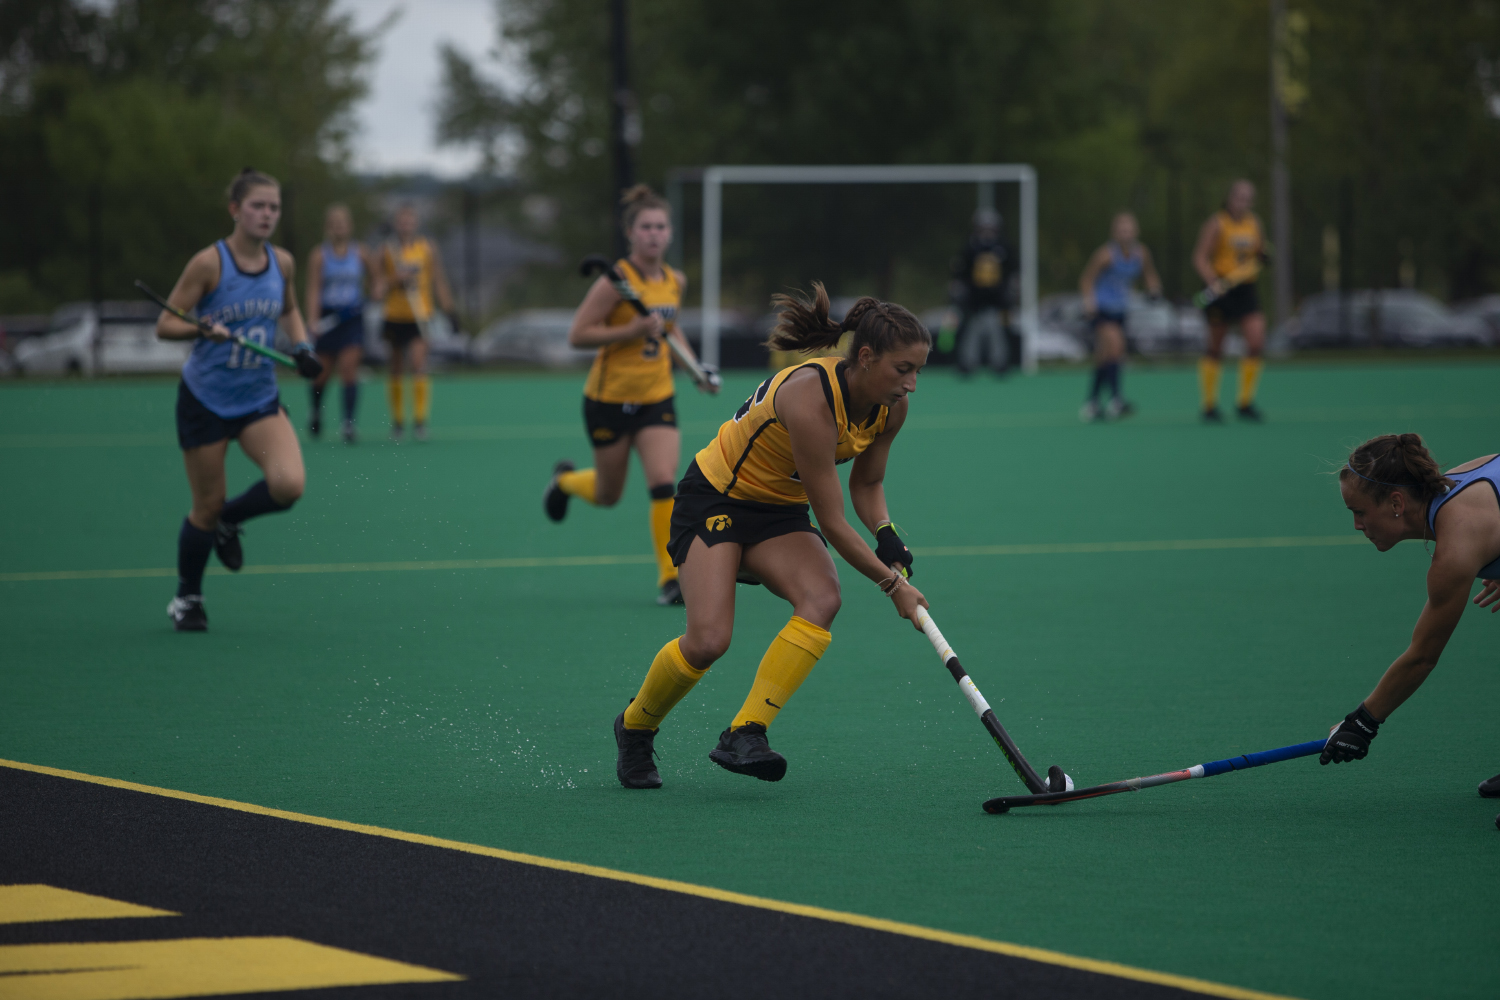 Iowa+midfielder+Isabella+SolaroliI+runs+with+the+ball+during+a+field+hockey+game+between+Iowa+and+Columbia+at+Grant+Field+on+Sunday%2C+September+8%2C+2019.+The+Hawkeyes+defeated+the+Lions%2C+3-1.